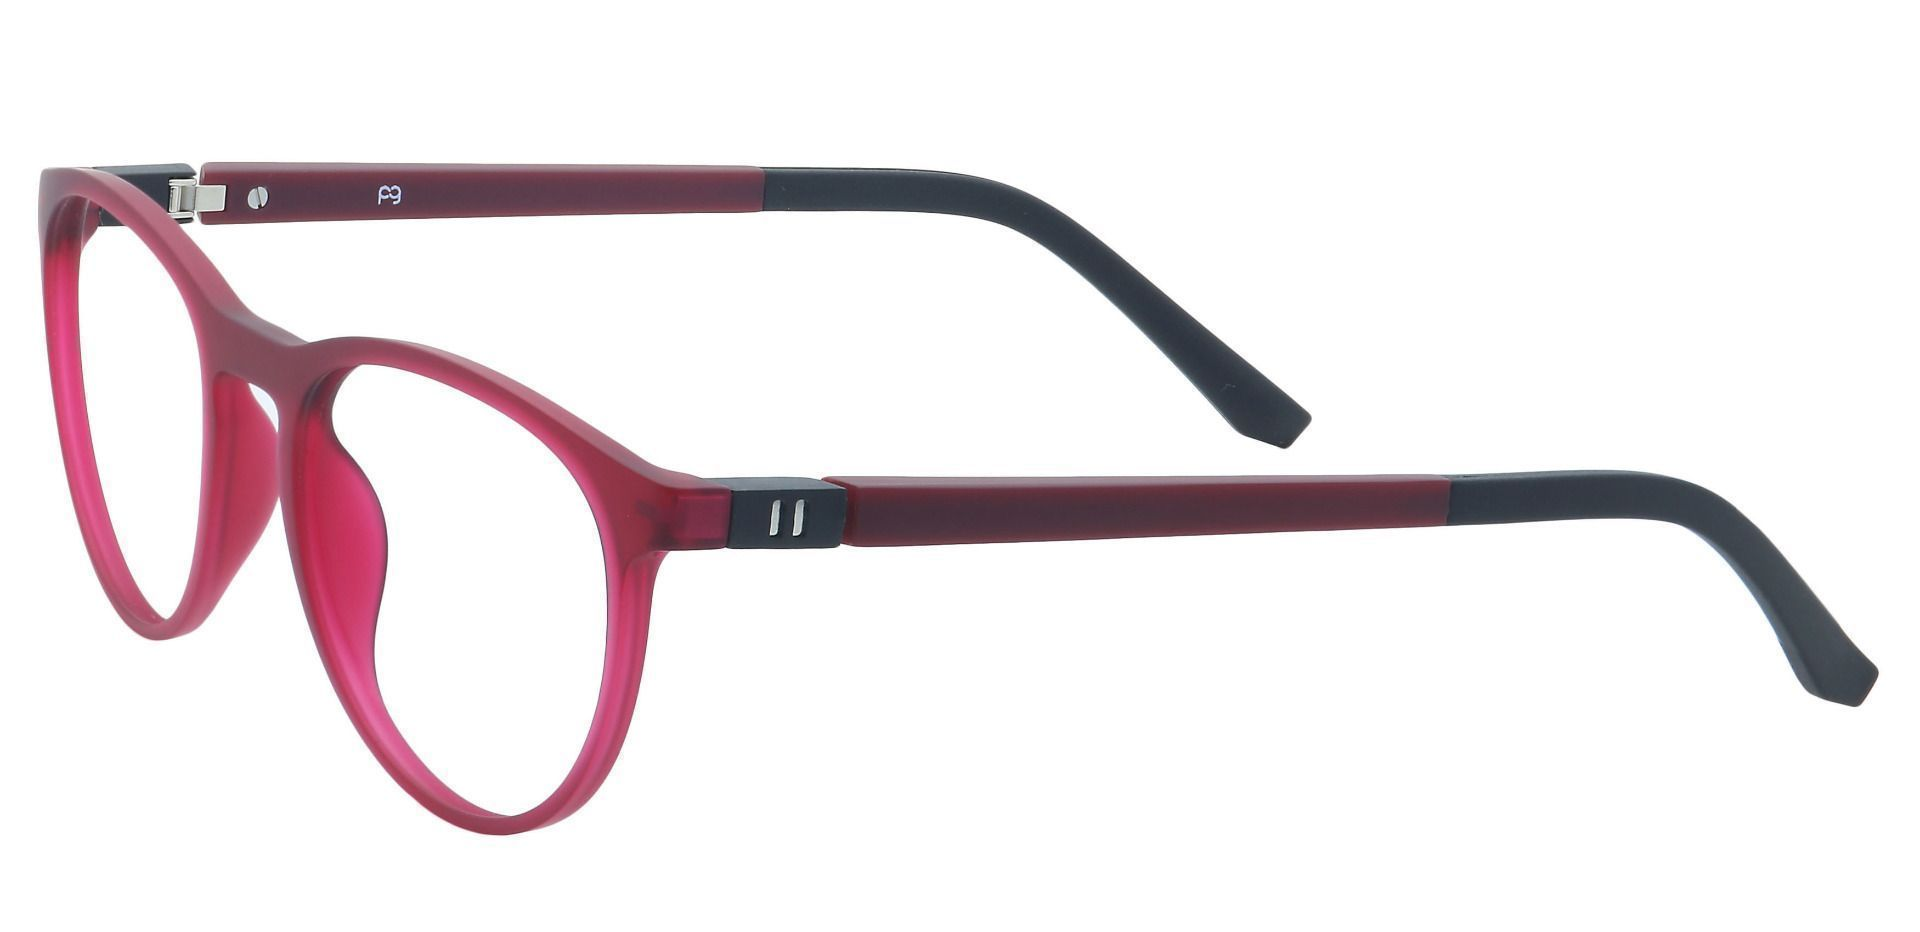 Heidi Round Prescription Glasses - Matte Red